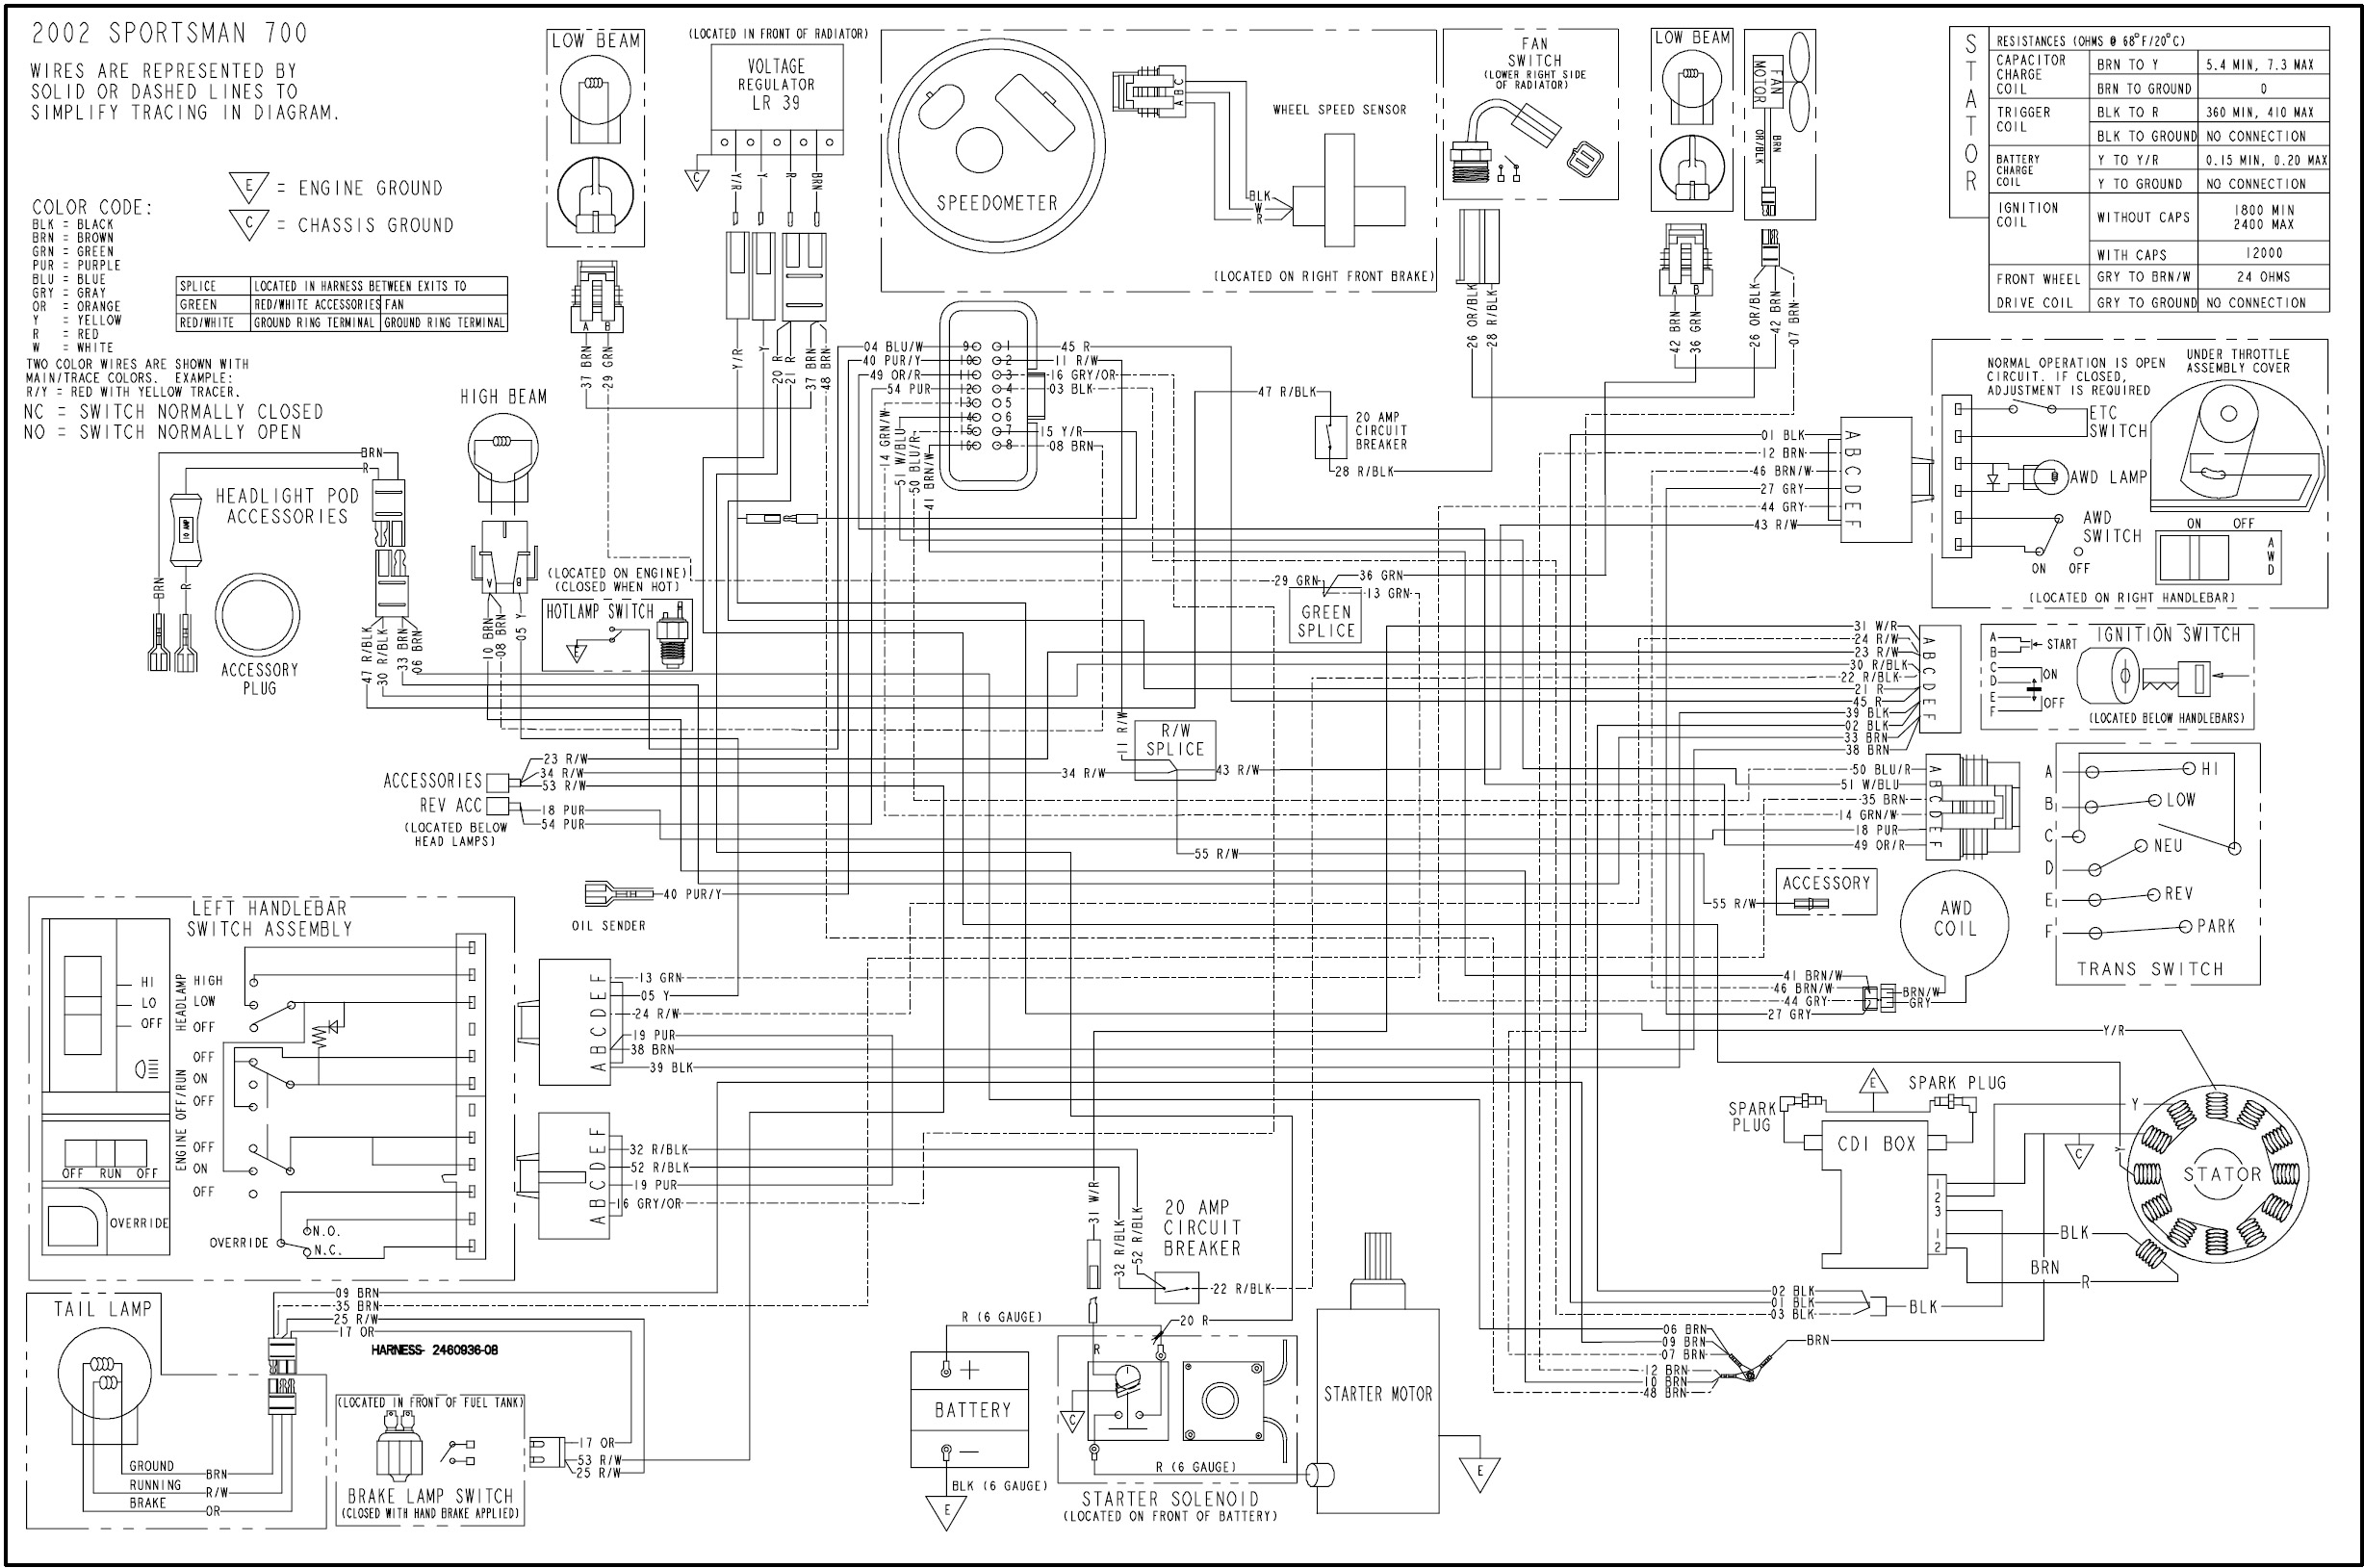 wd_700_02 wiring diagram 2003 polaris 600 atv readingrat net polaris 500 wiring diagram at aneh.co